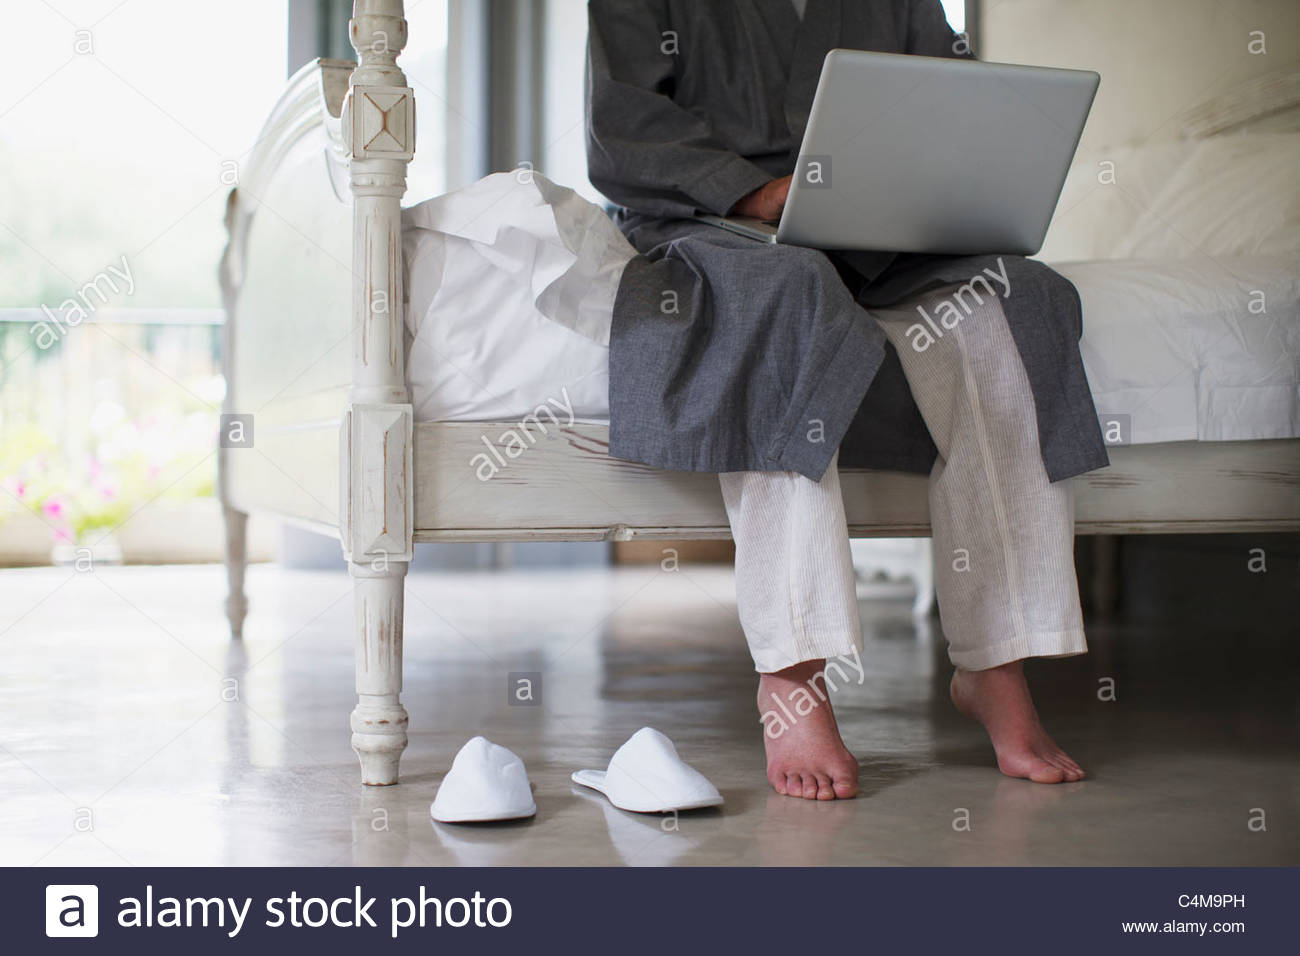 Senior man with bare feet sitting on edge of bed using laptop - Stock Image